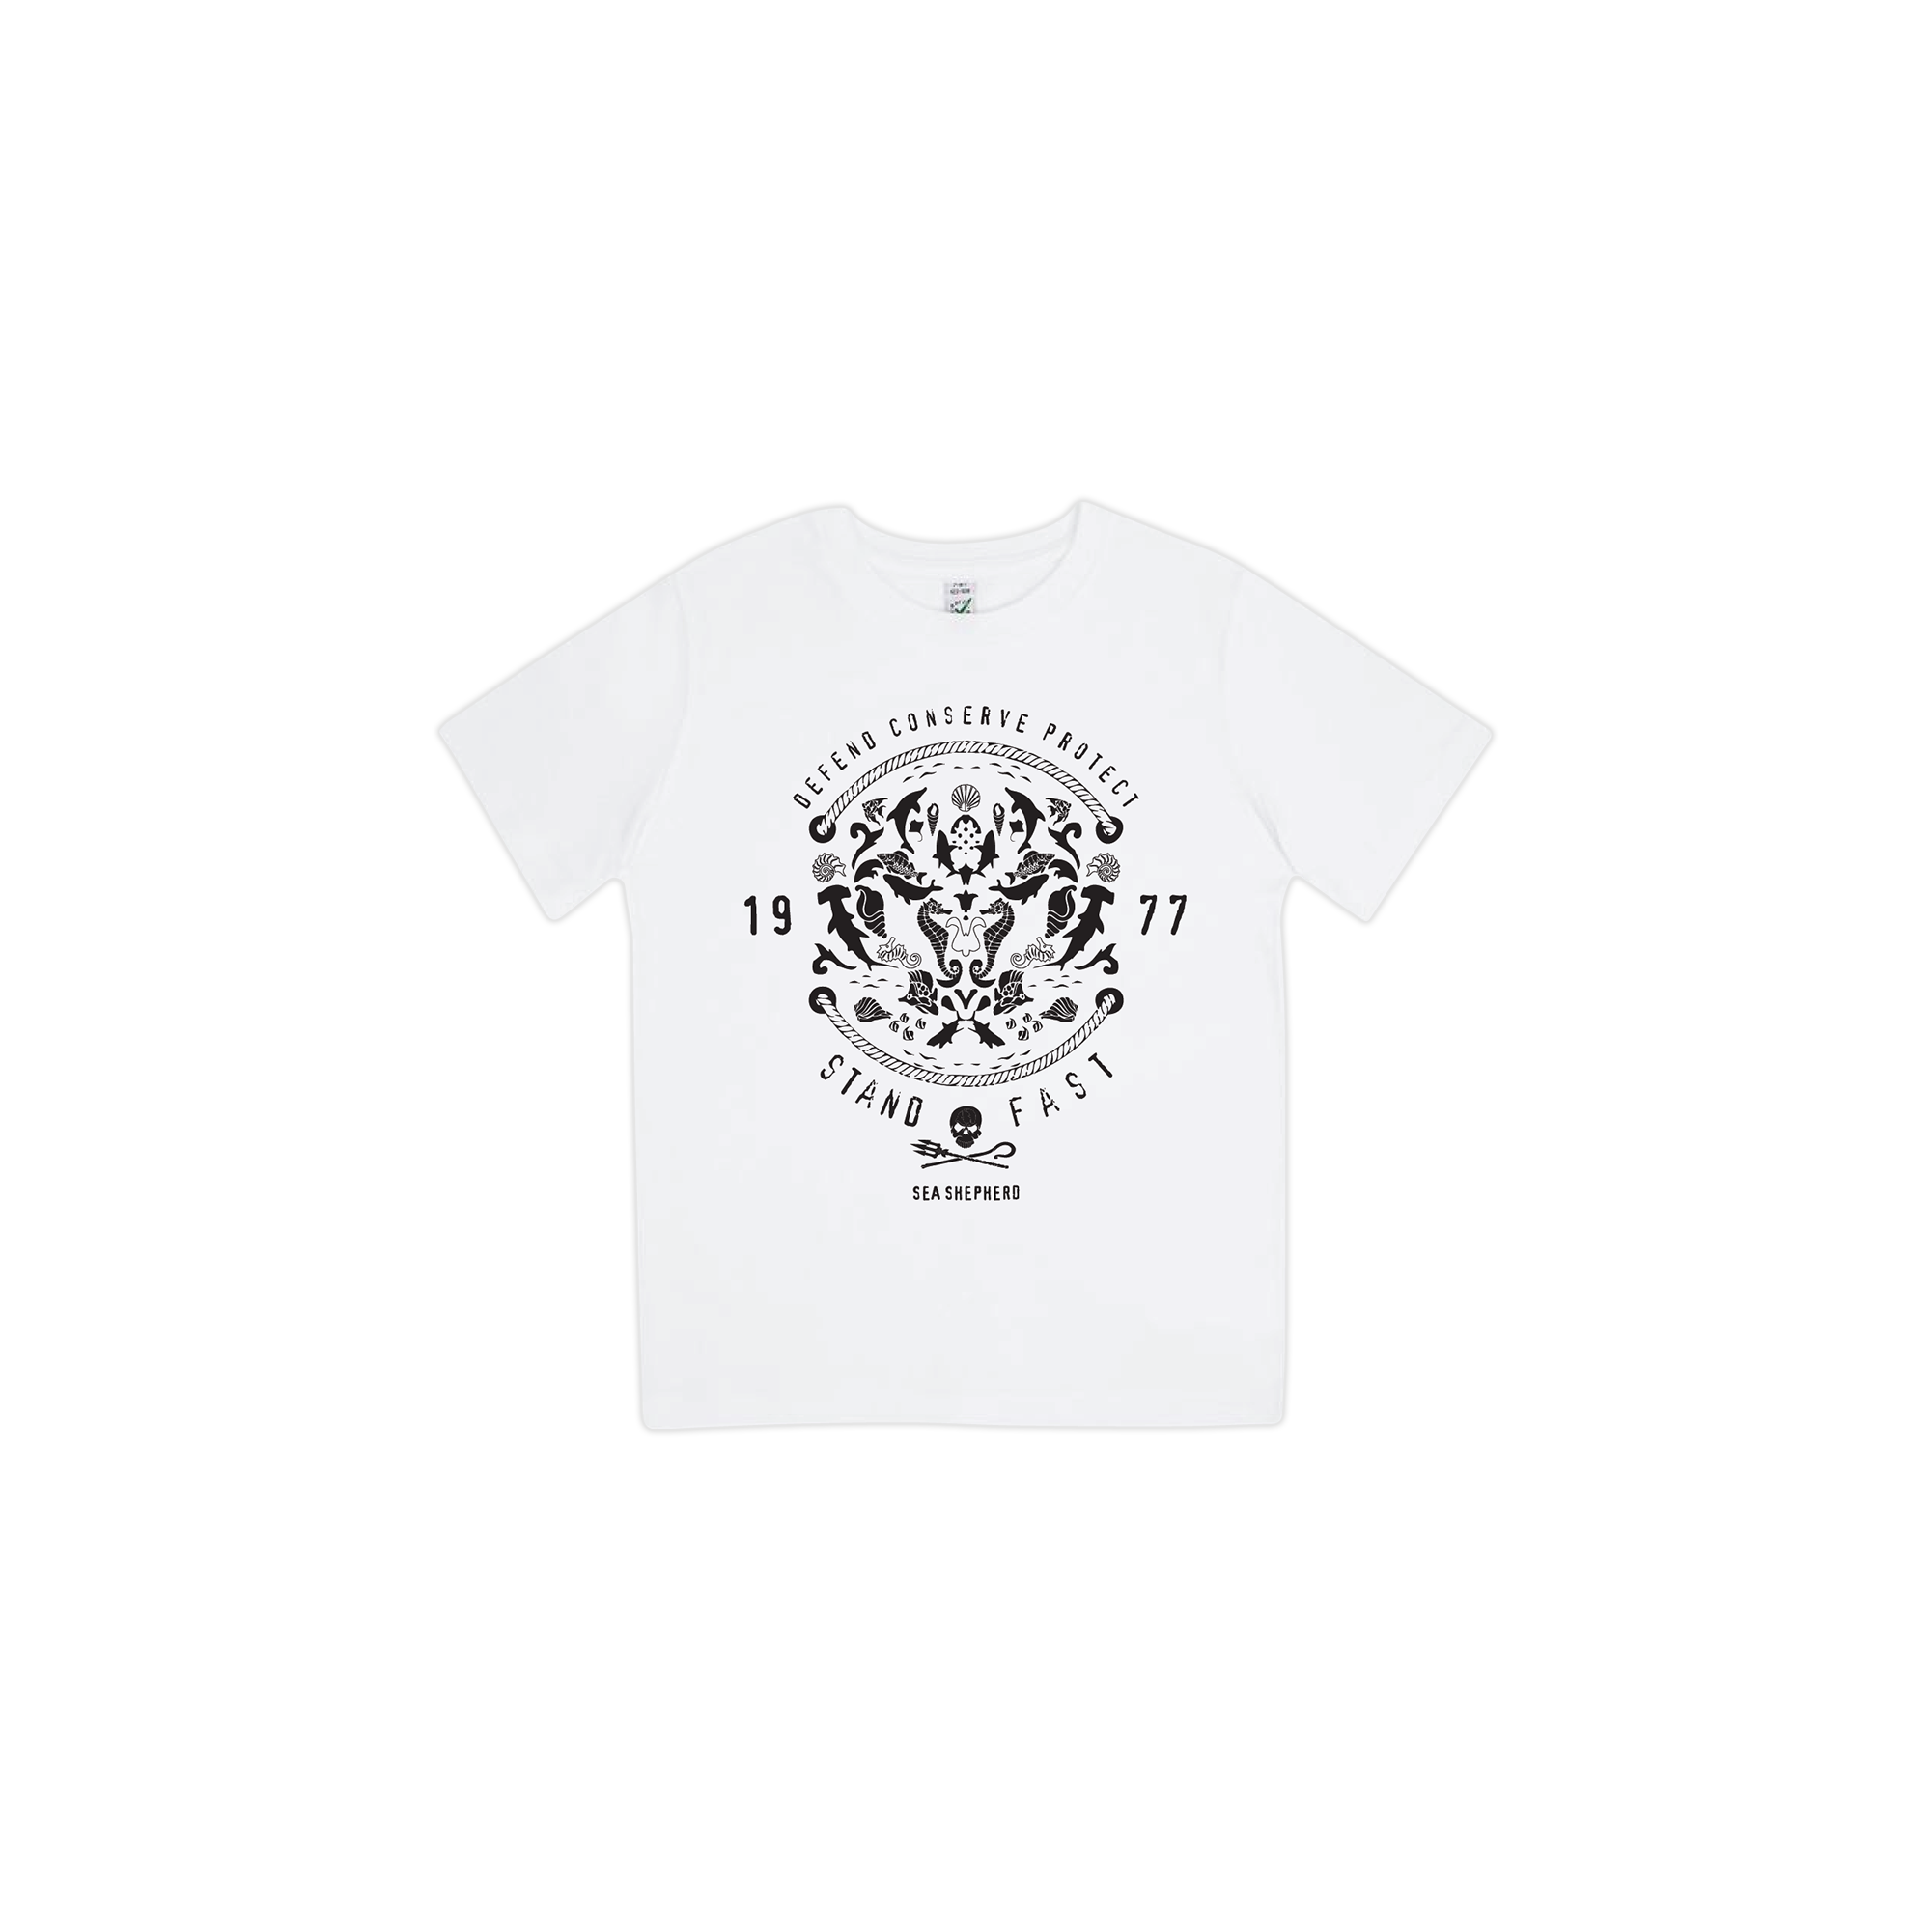 Sea Shepherd - Standfast - Wonders Of The Sea - 100% Organic Cotton Kids Tee - White